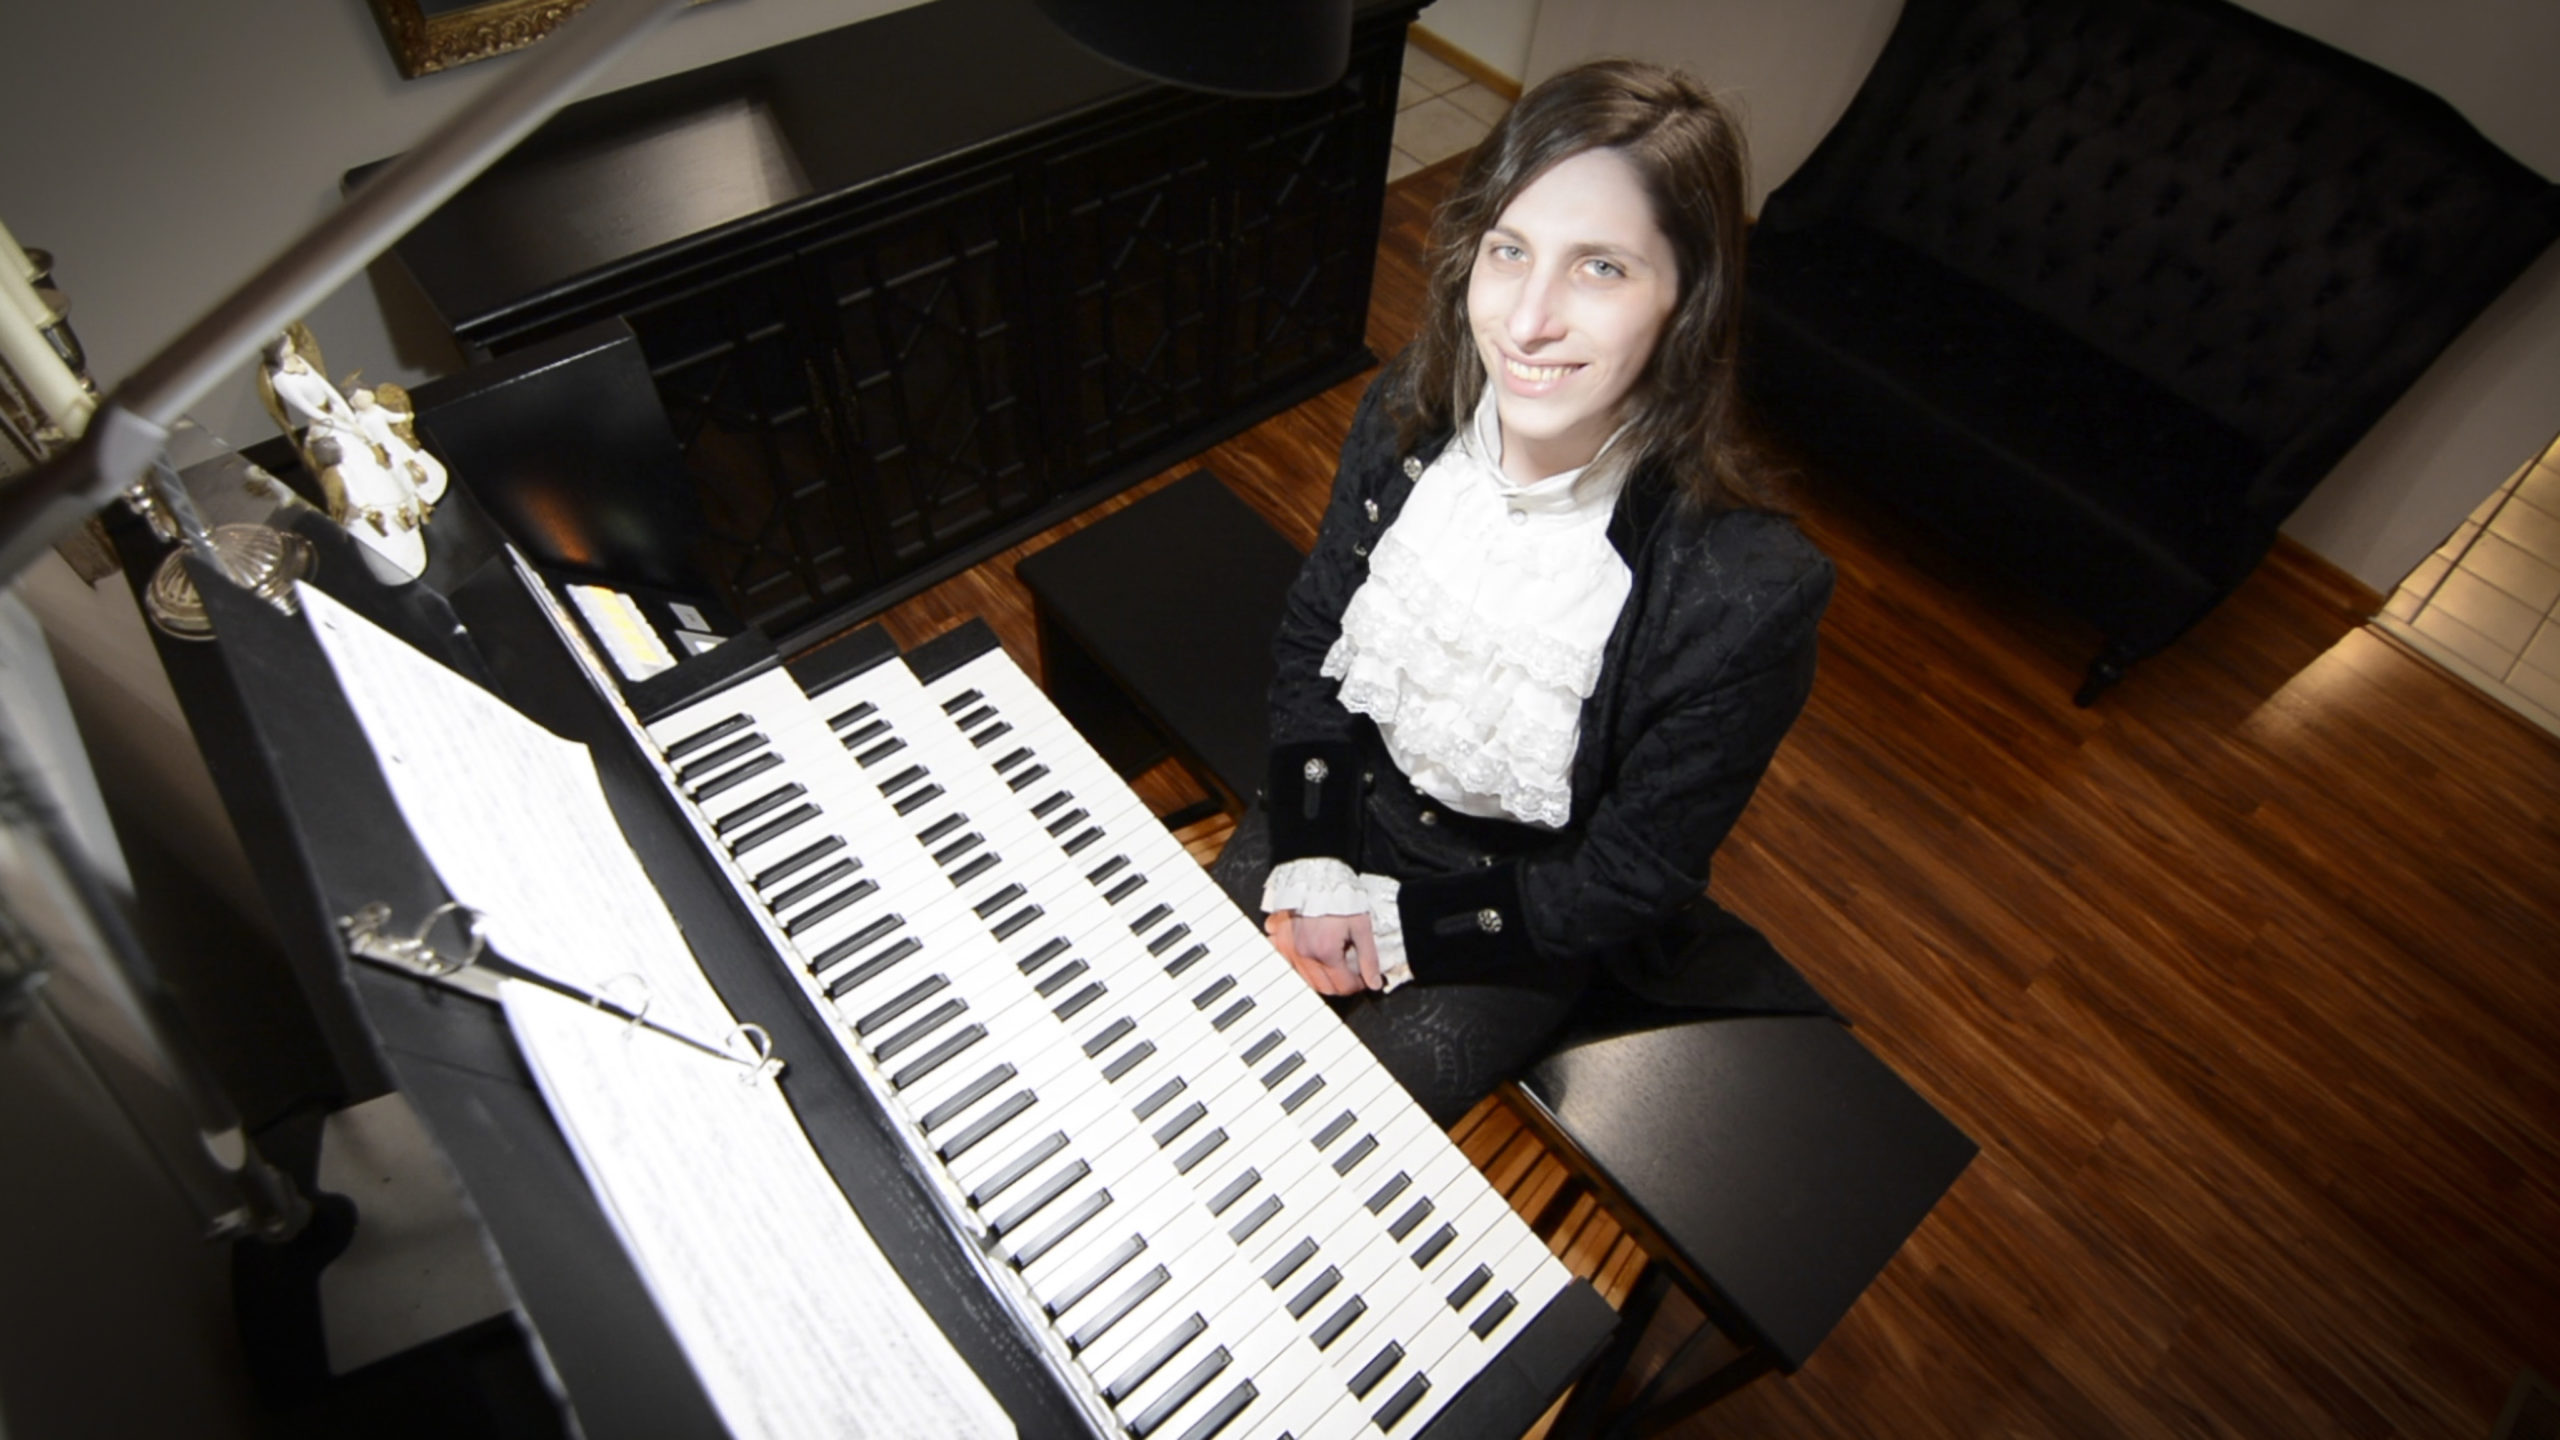 Transgender organist and composer Dr. Kris Rizzotto at the organ